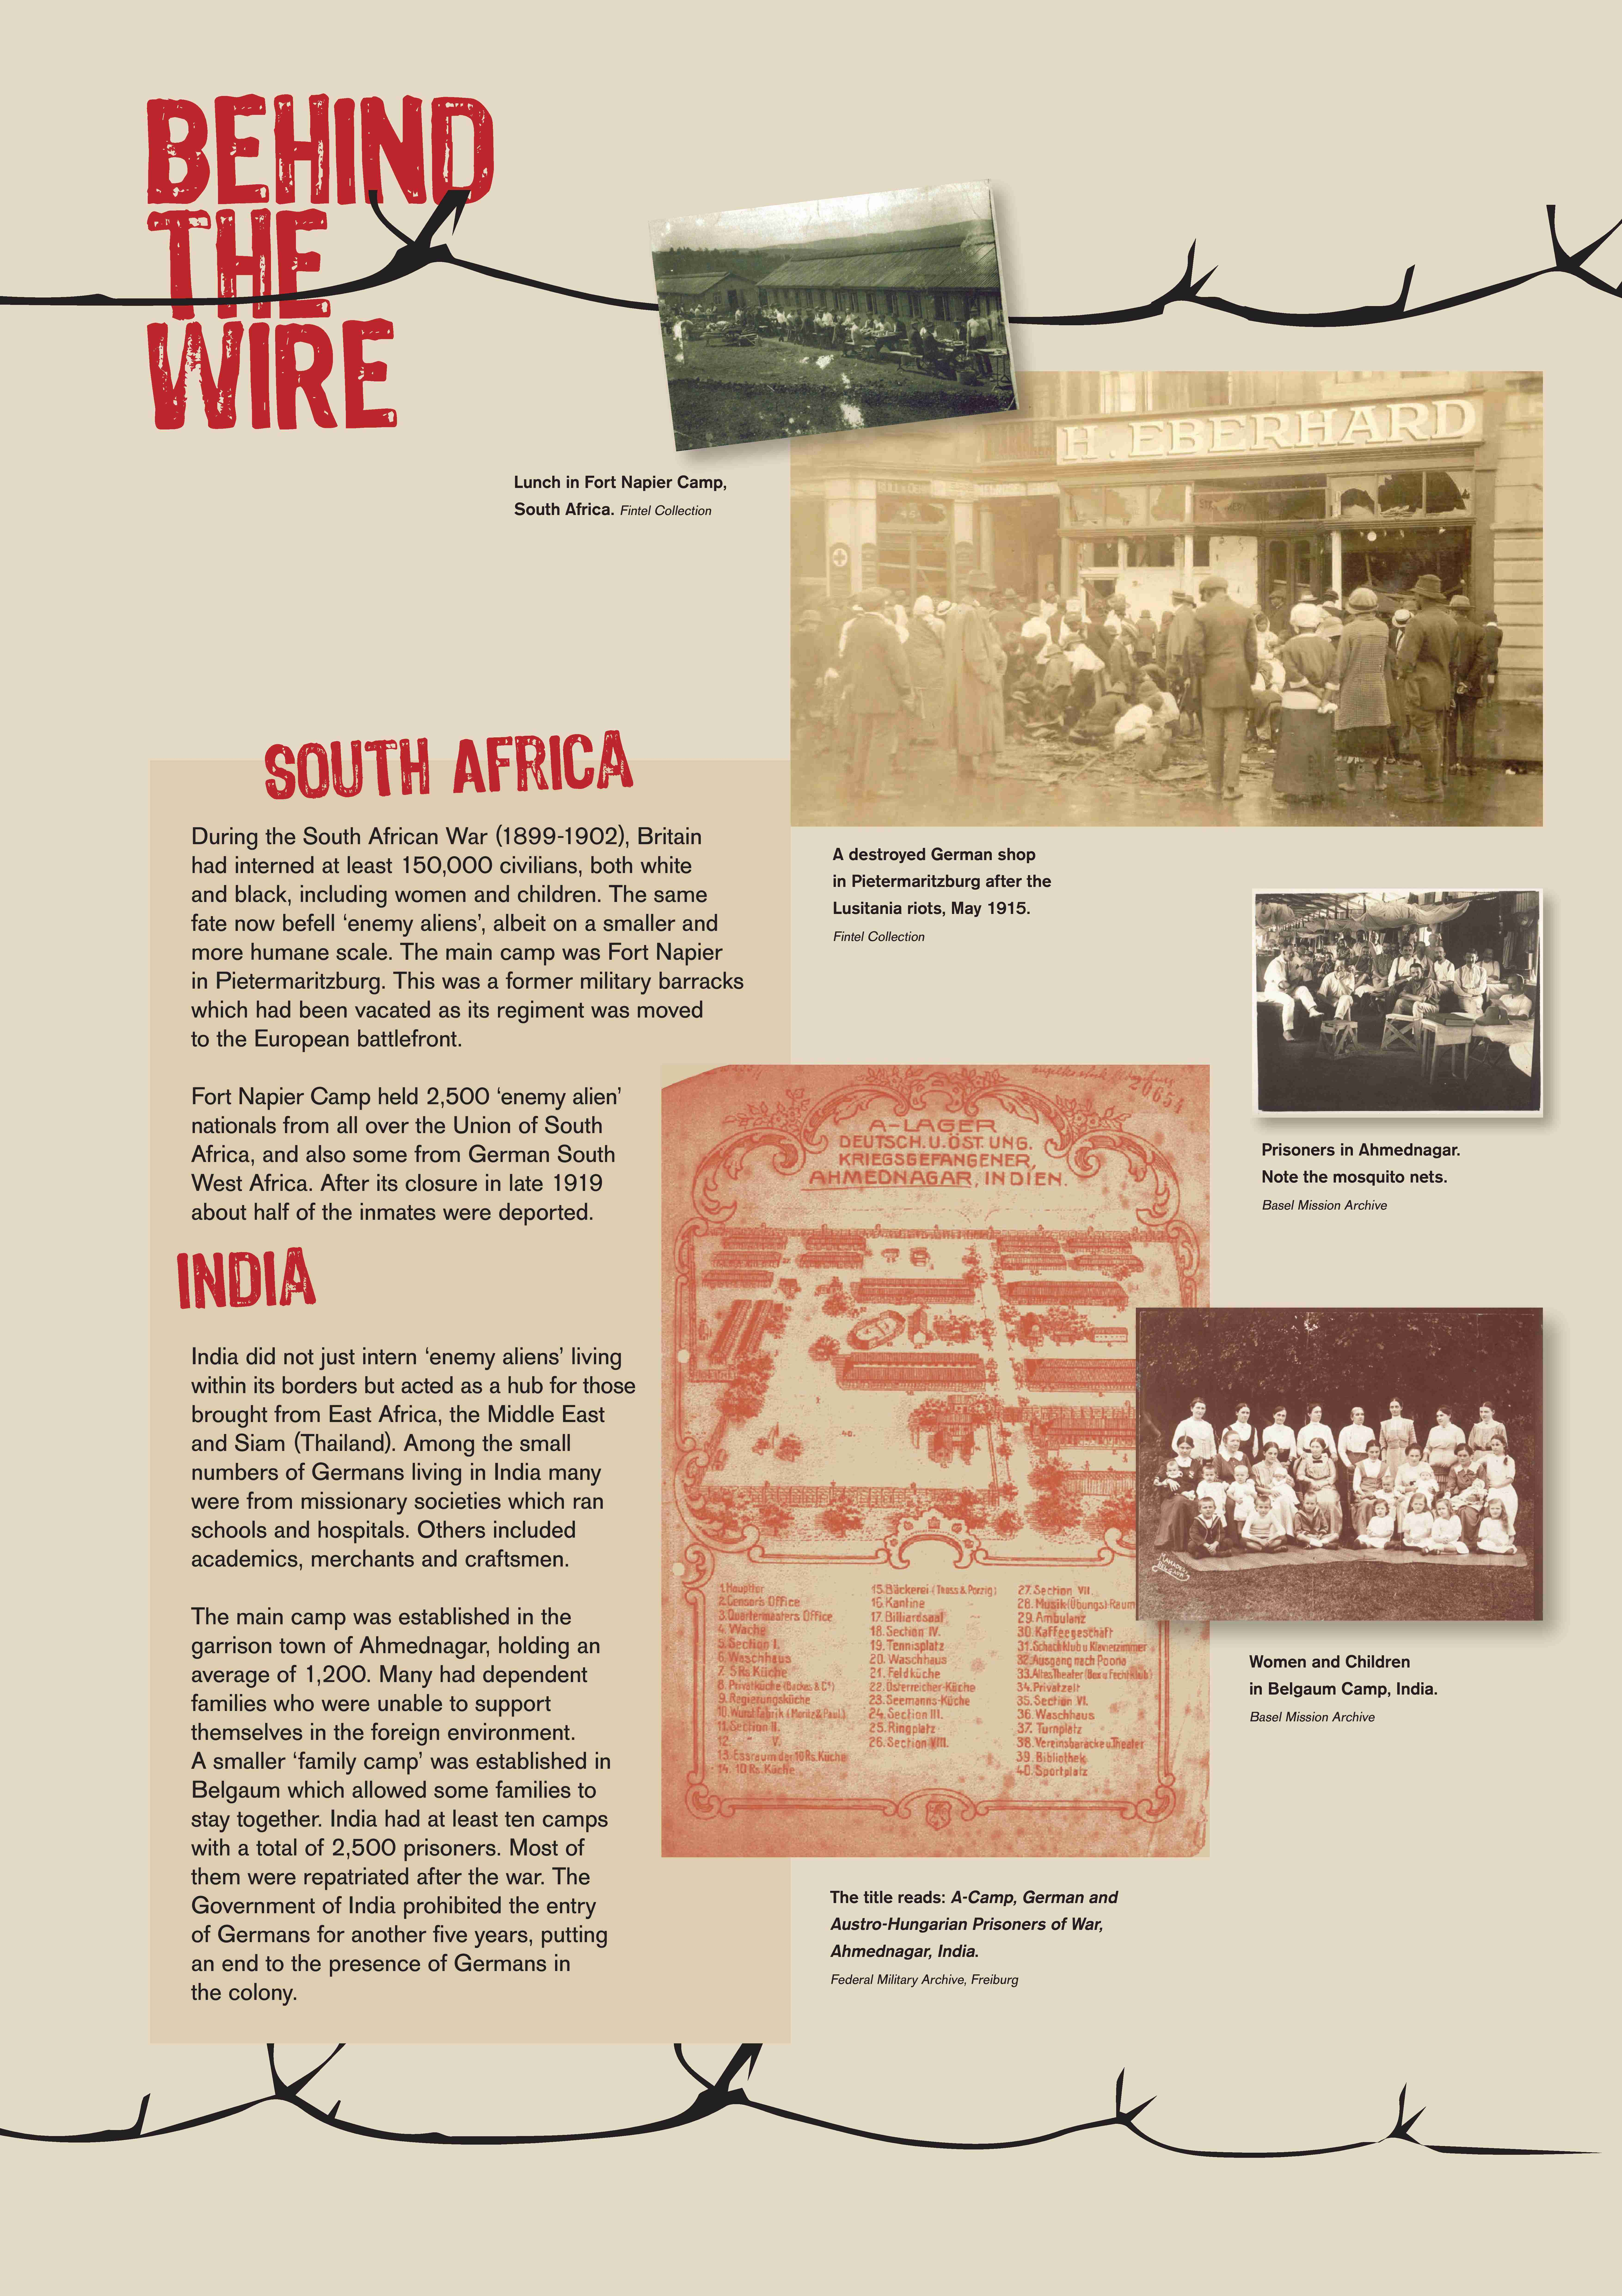 05-Behind the Wire-A1-Exhibition-South Africa-India_DIGITAL VERSION-page-001-compressed